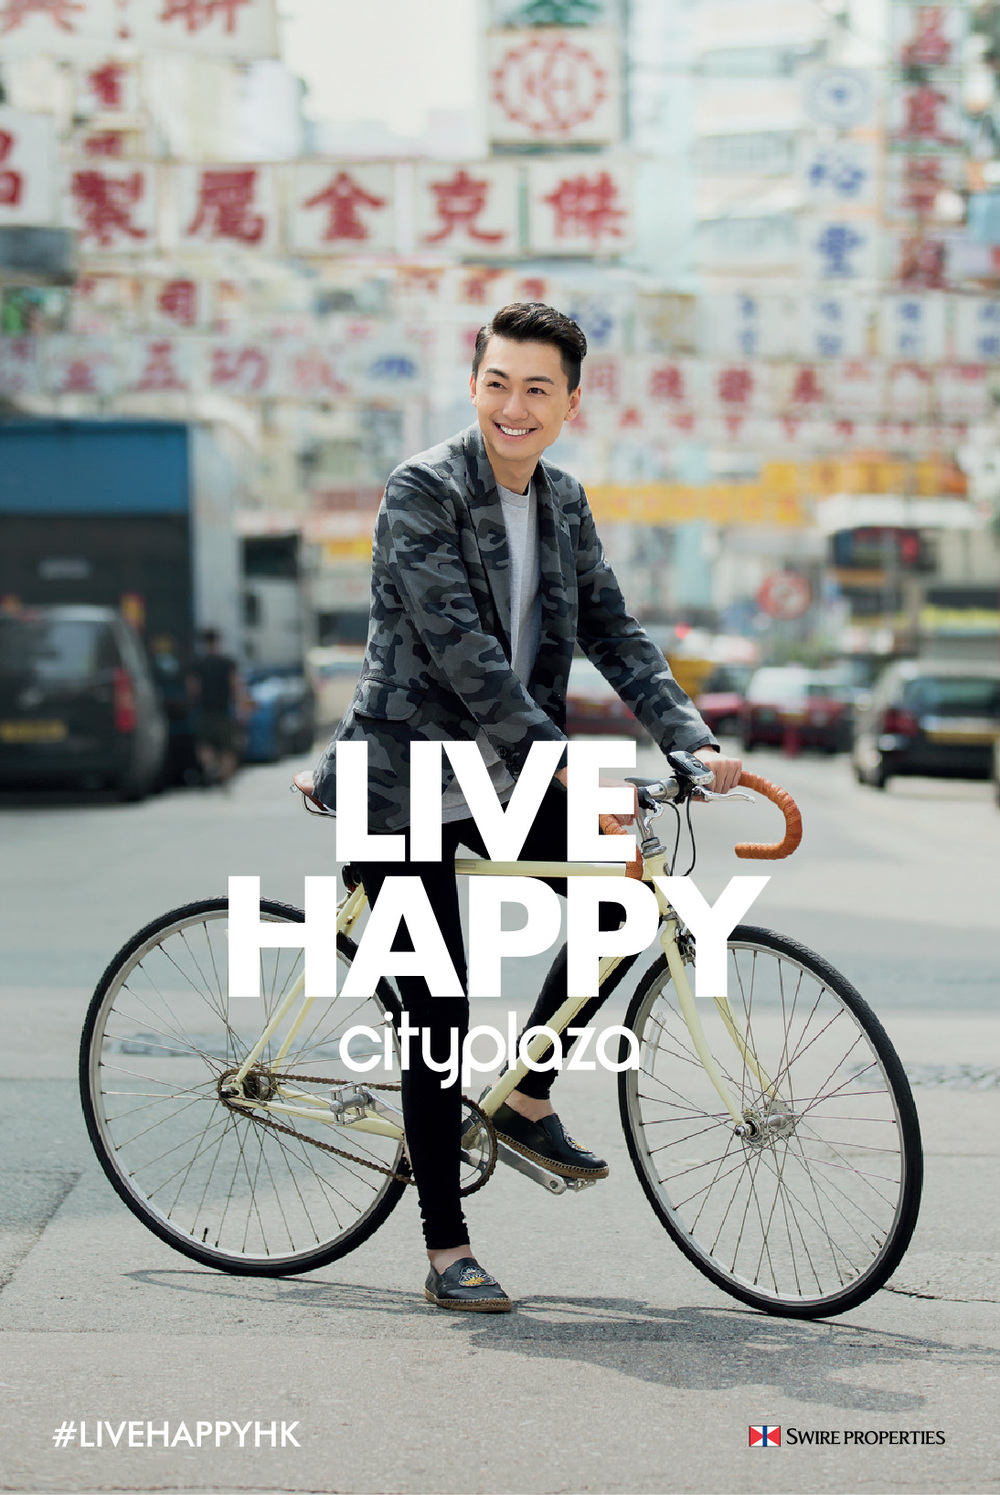 city plaza live happy print ad